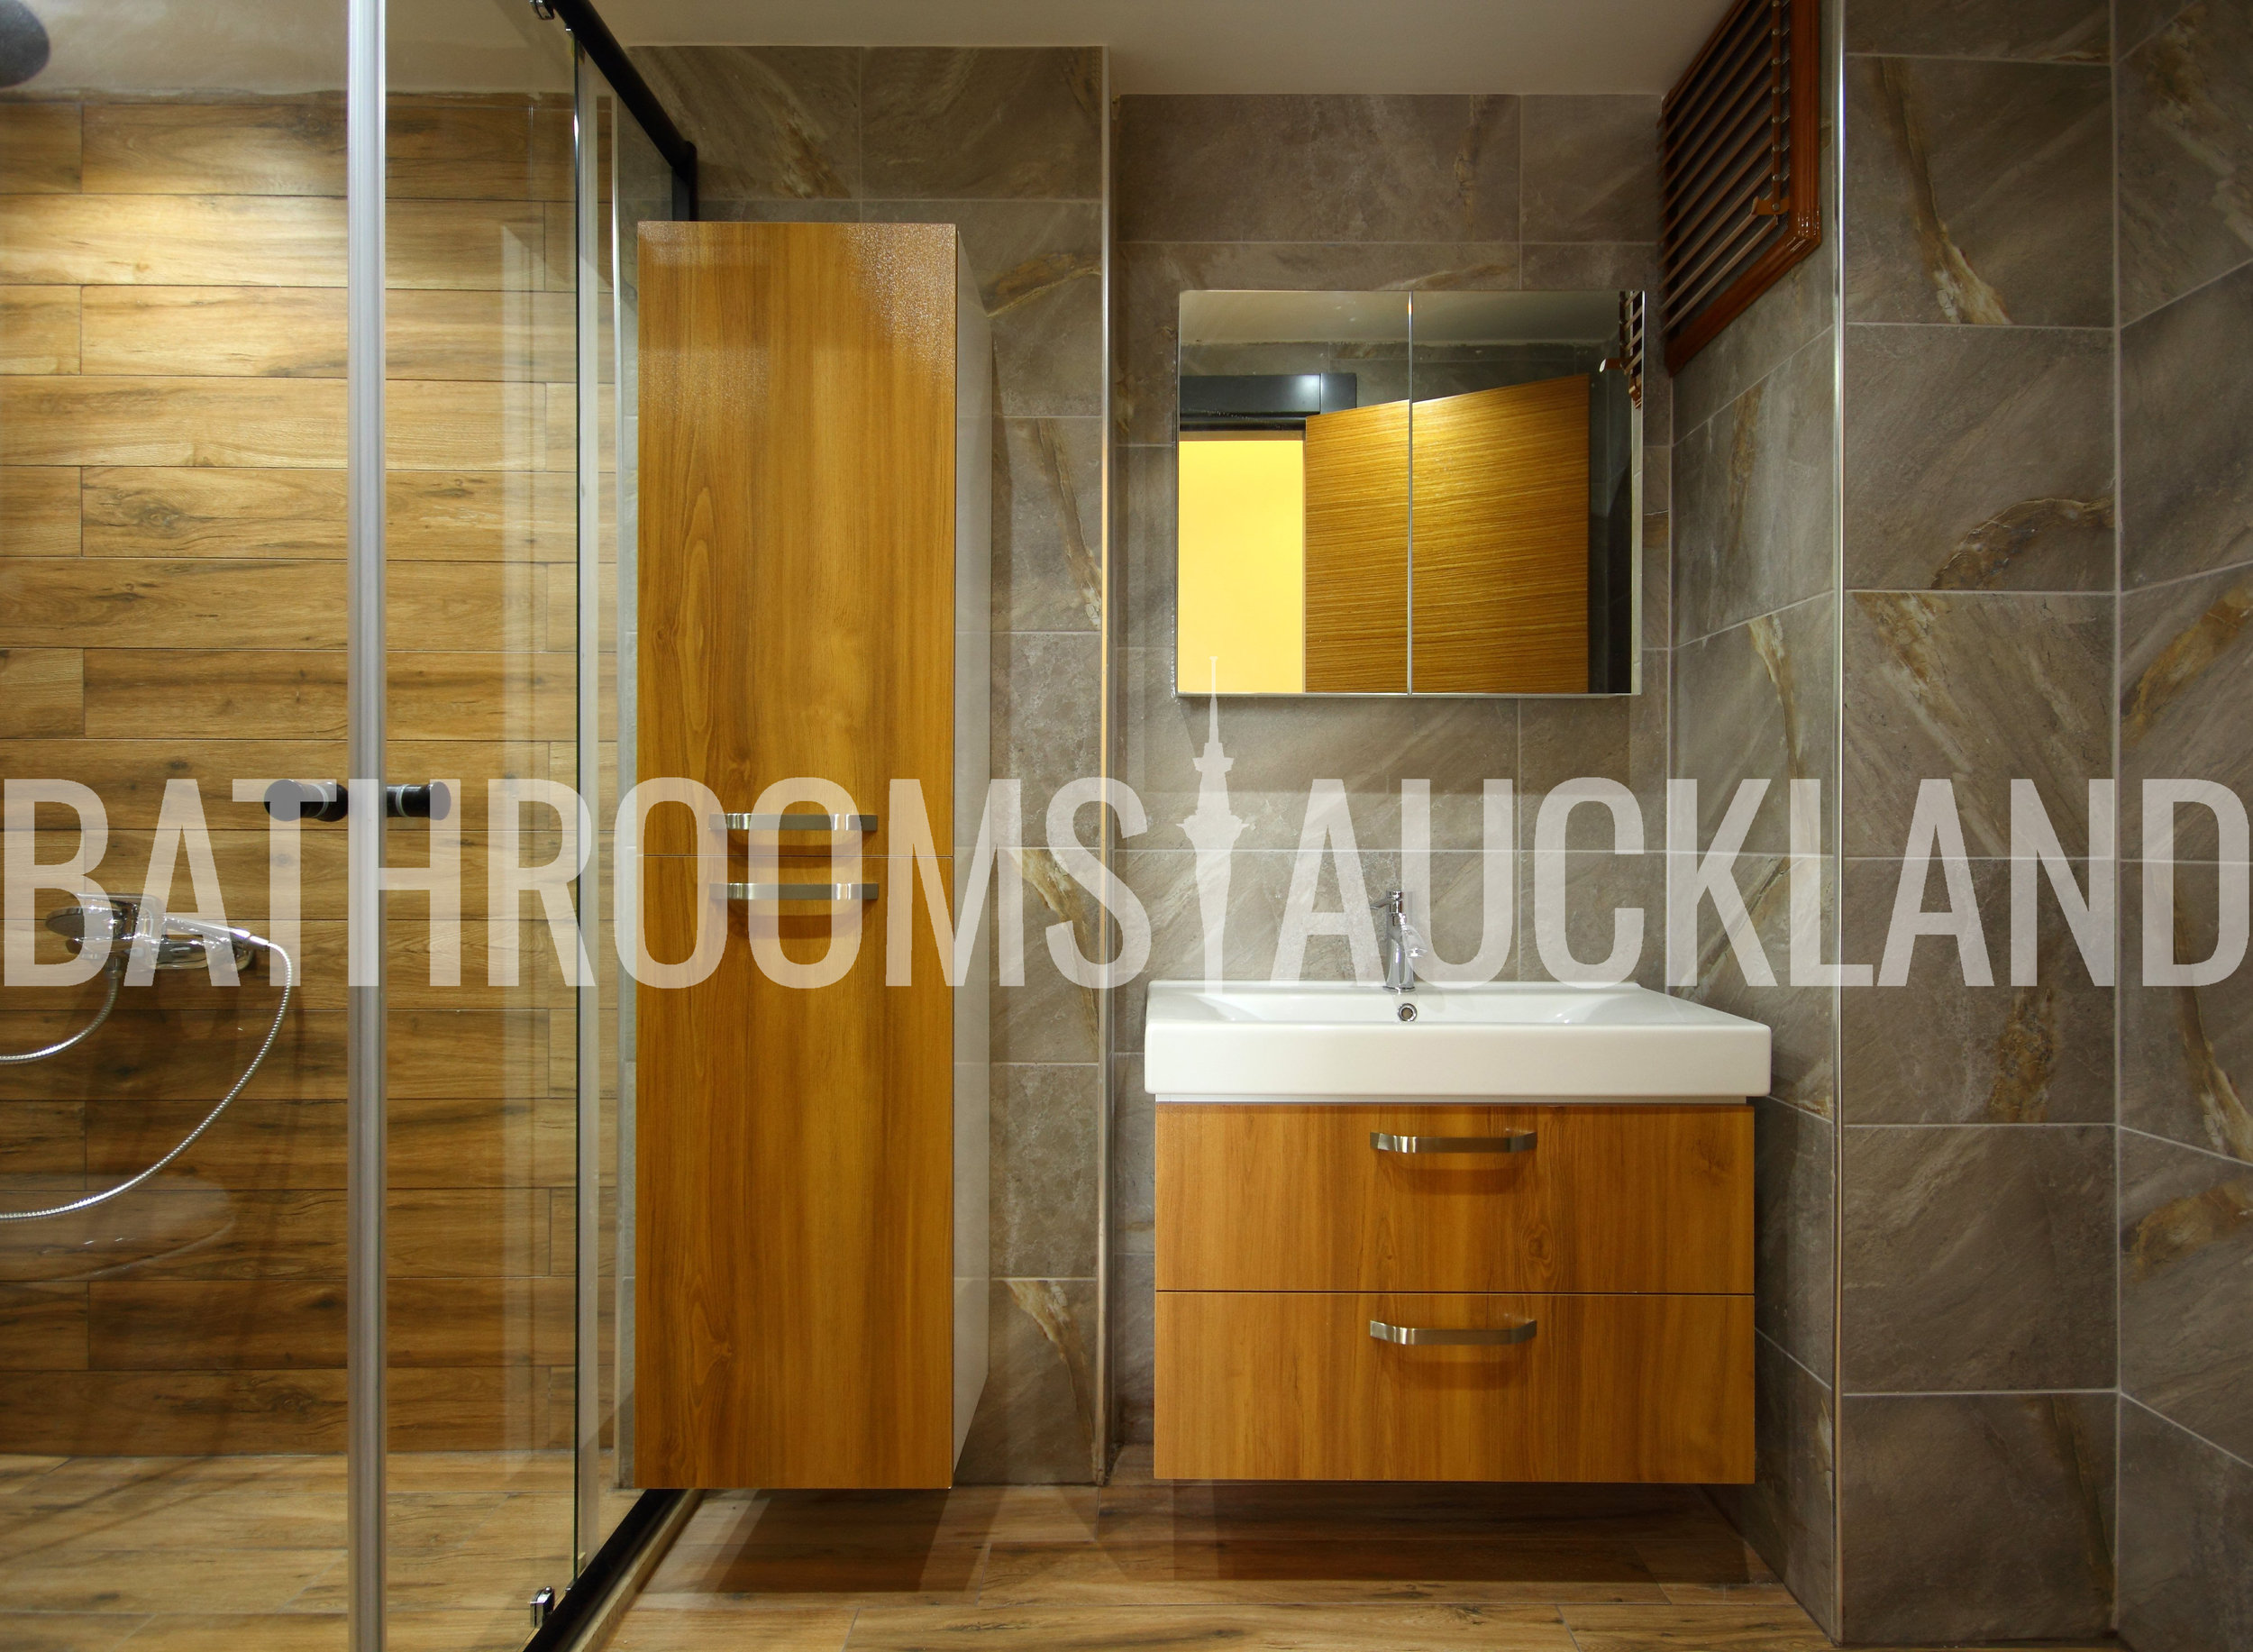 Bathrooms Auckland Renovation_Bathrooms In Auckland_Bathroom Renovation_Bathrooms Renovation_Bathrooms Auckland Renovation .1225.jpg